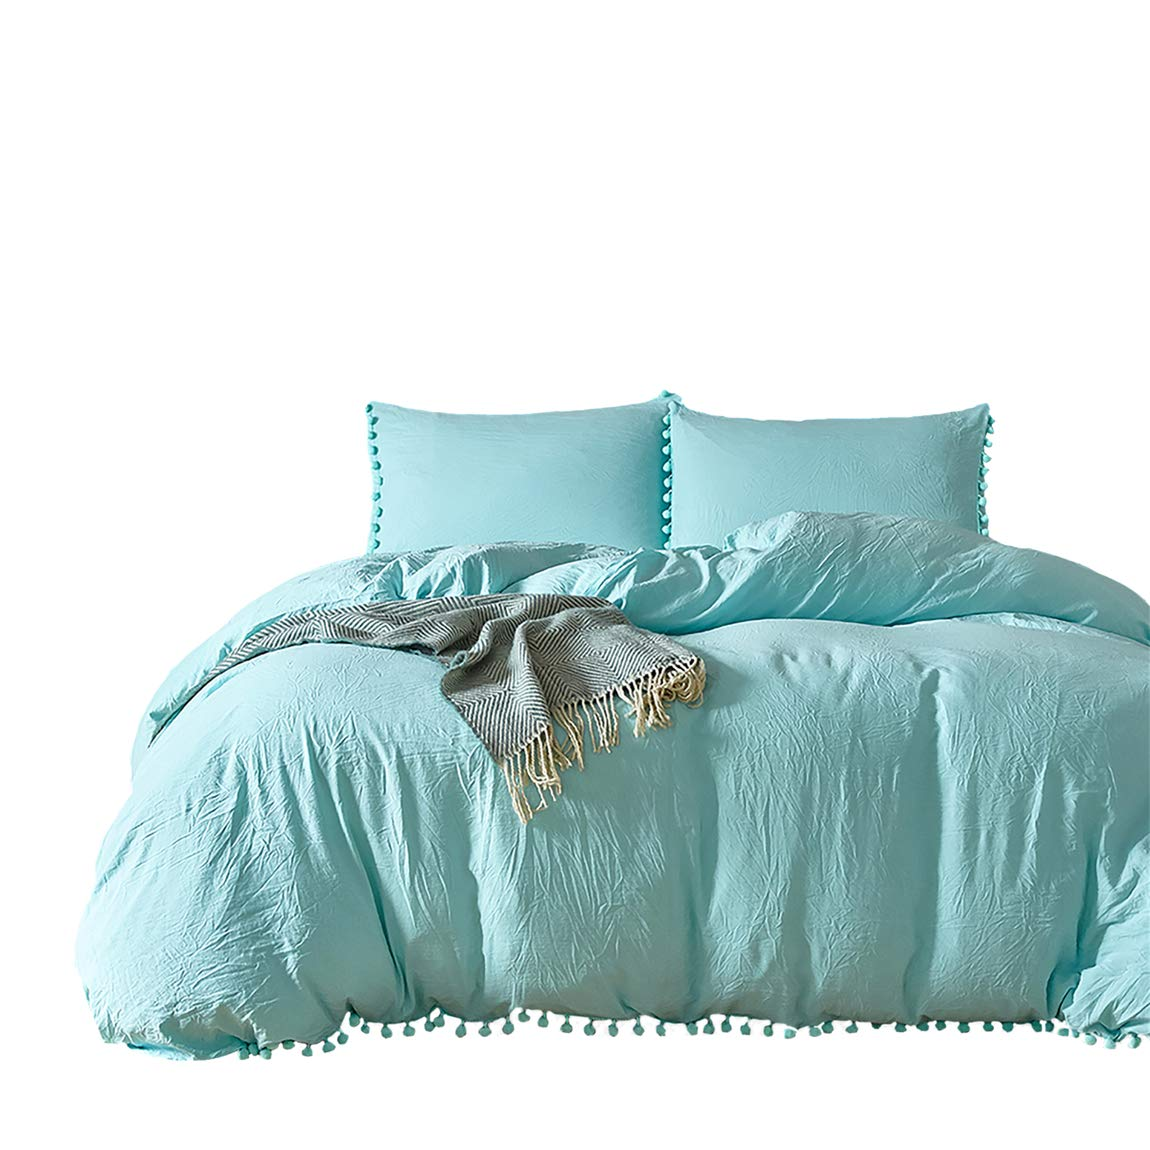 iAsteria Super Soft Duvet Cover and Pillow Shams Set, Microfiber, Pom Pom Fringe, Comforter Cover with Zipper and Ties, Easy Care, Simple Style Bedding Set, 3 Piece - Queen, Aqua